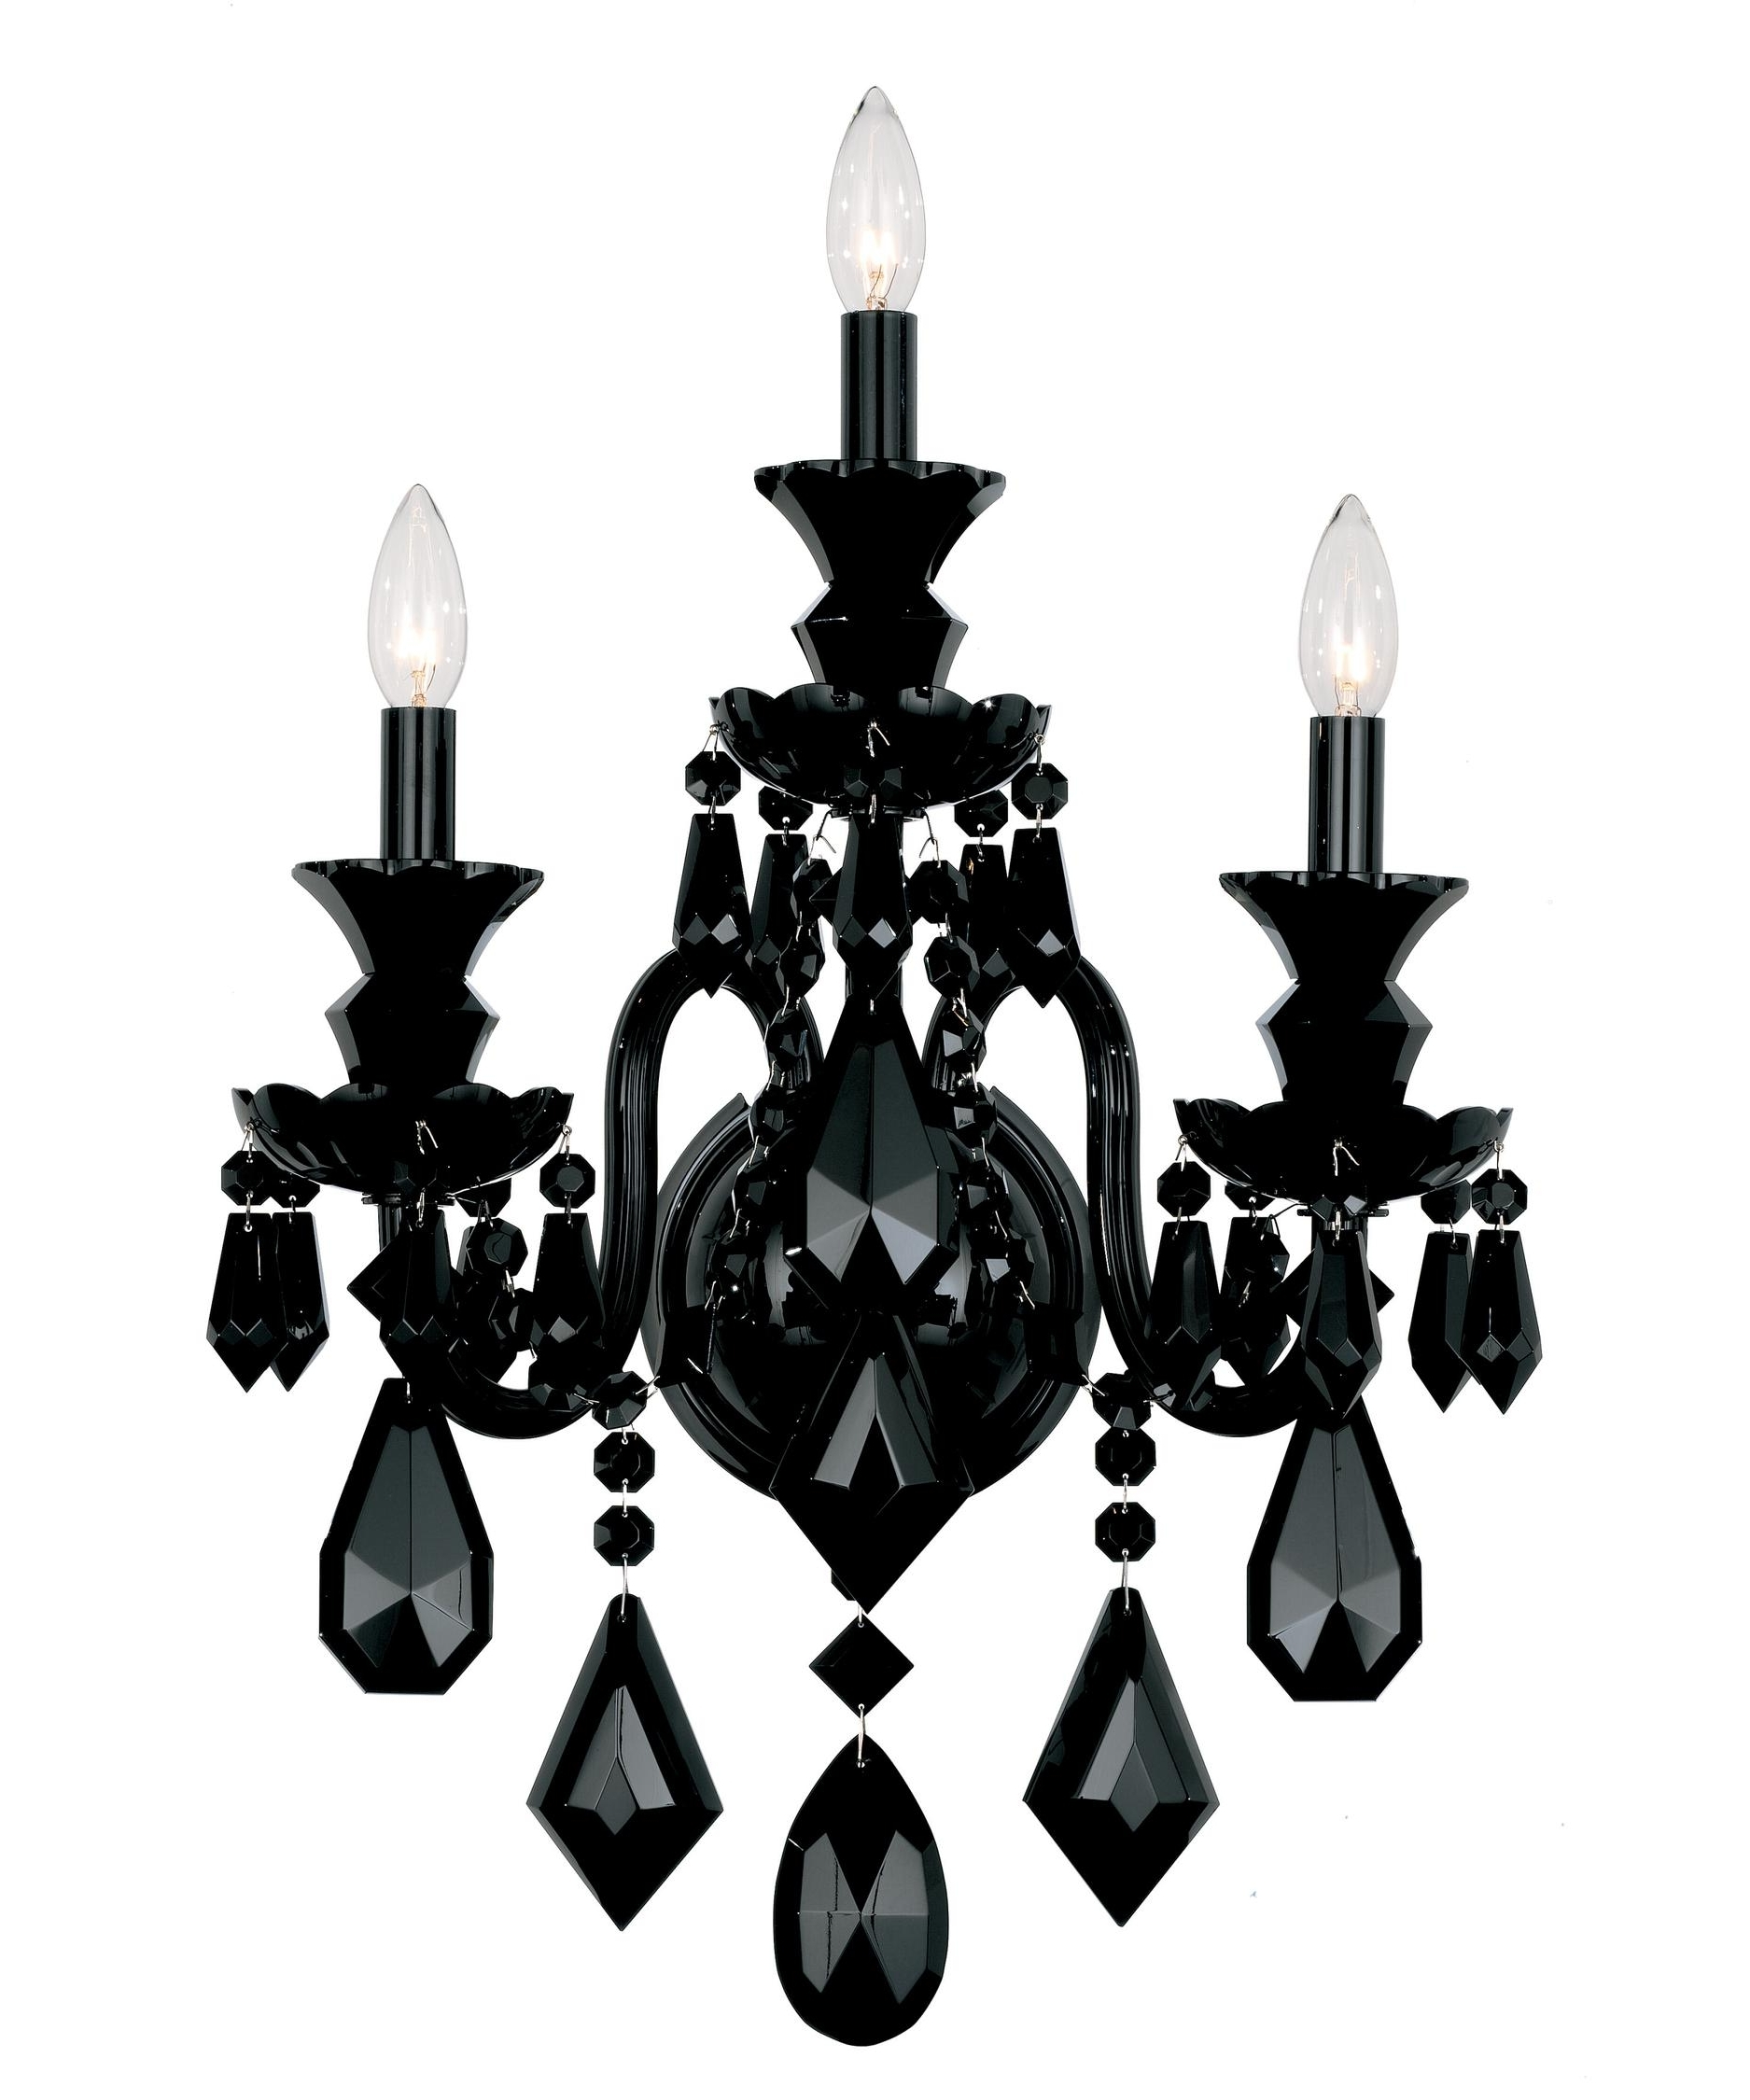 Schonbek 5703bk Hamilton Black 15 Inch Wide Wall Sconce (View 2 of 20)